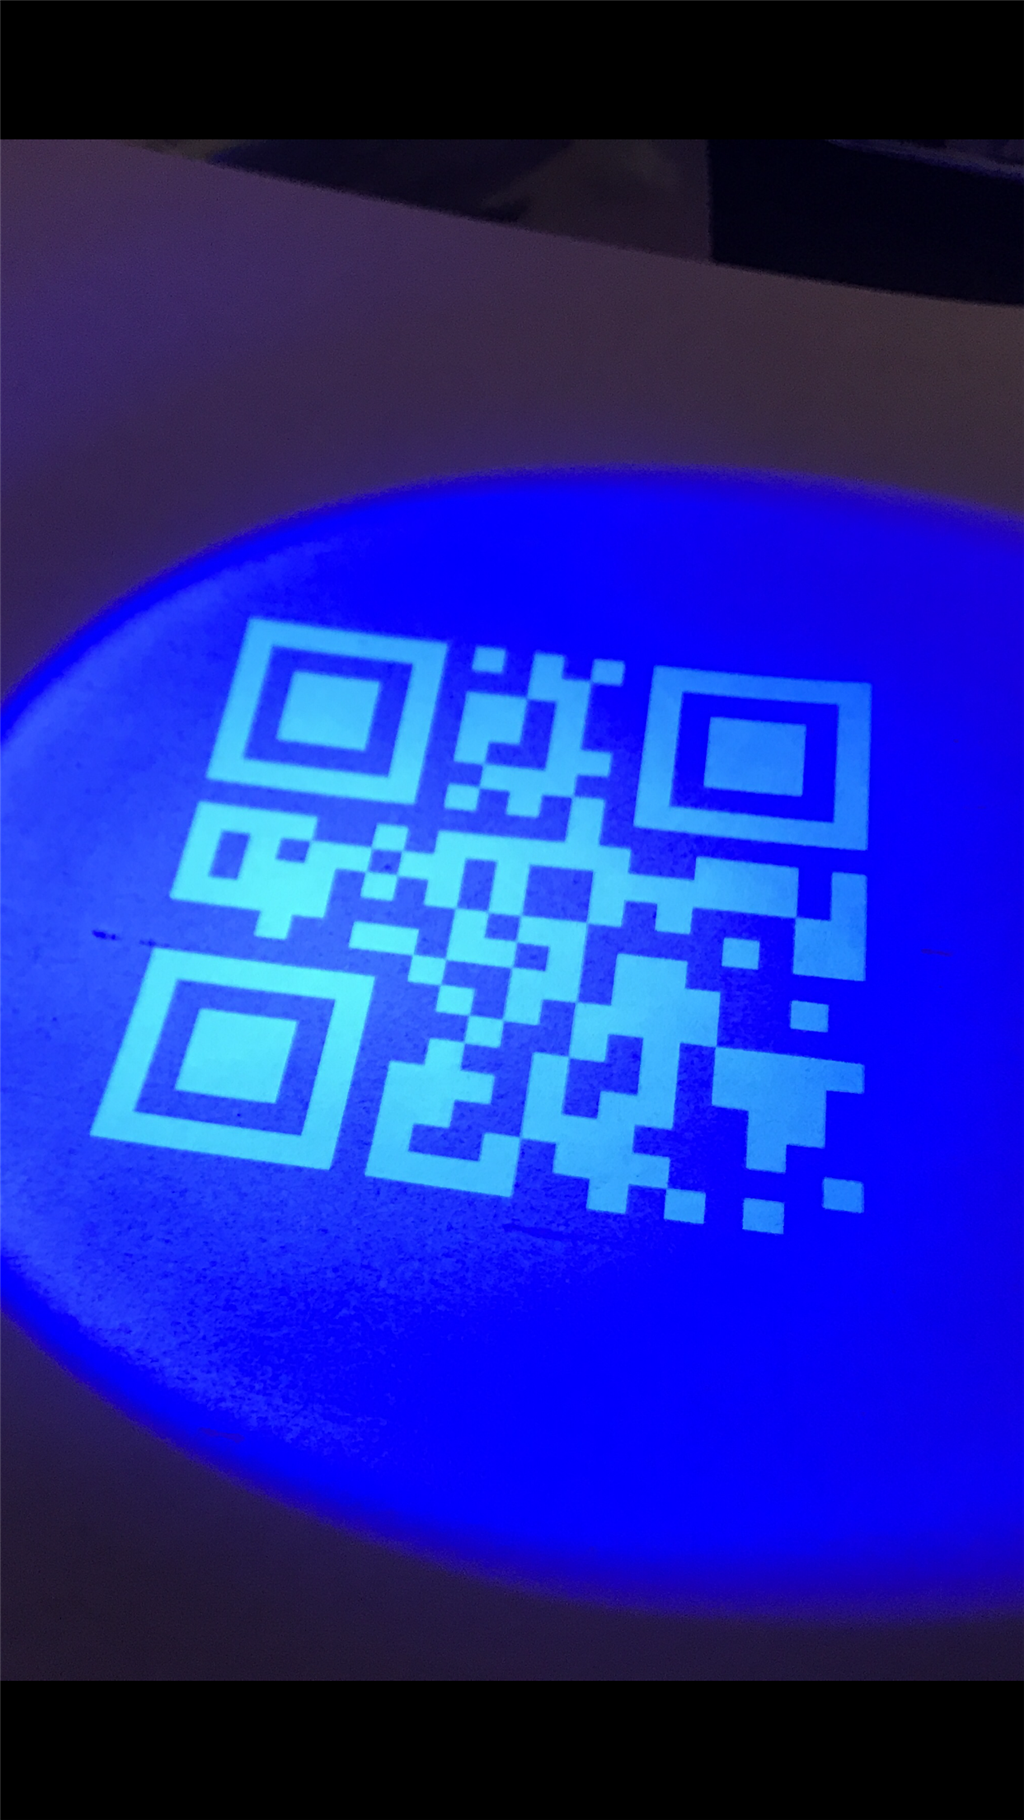 Invisible Qr Code Project For Hackaday Competition